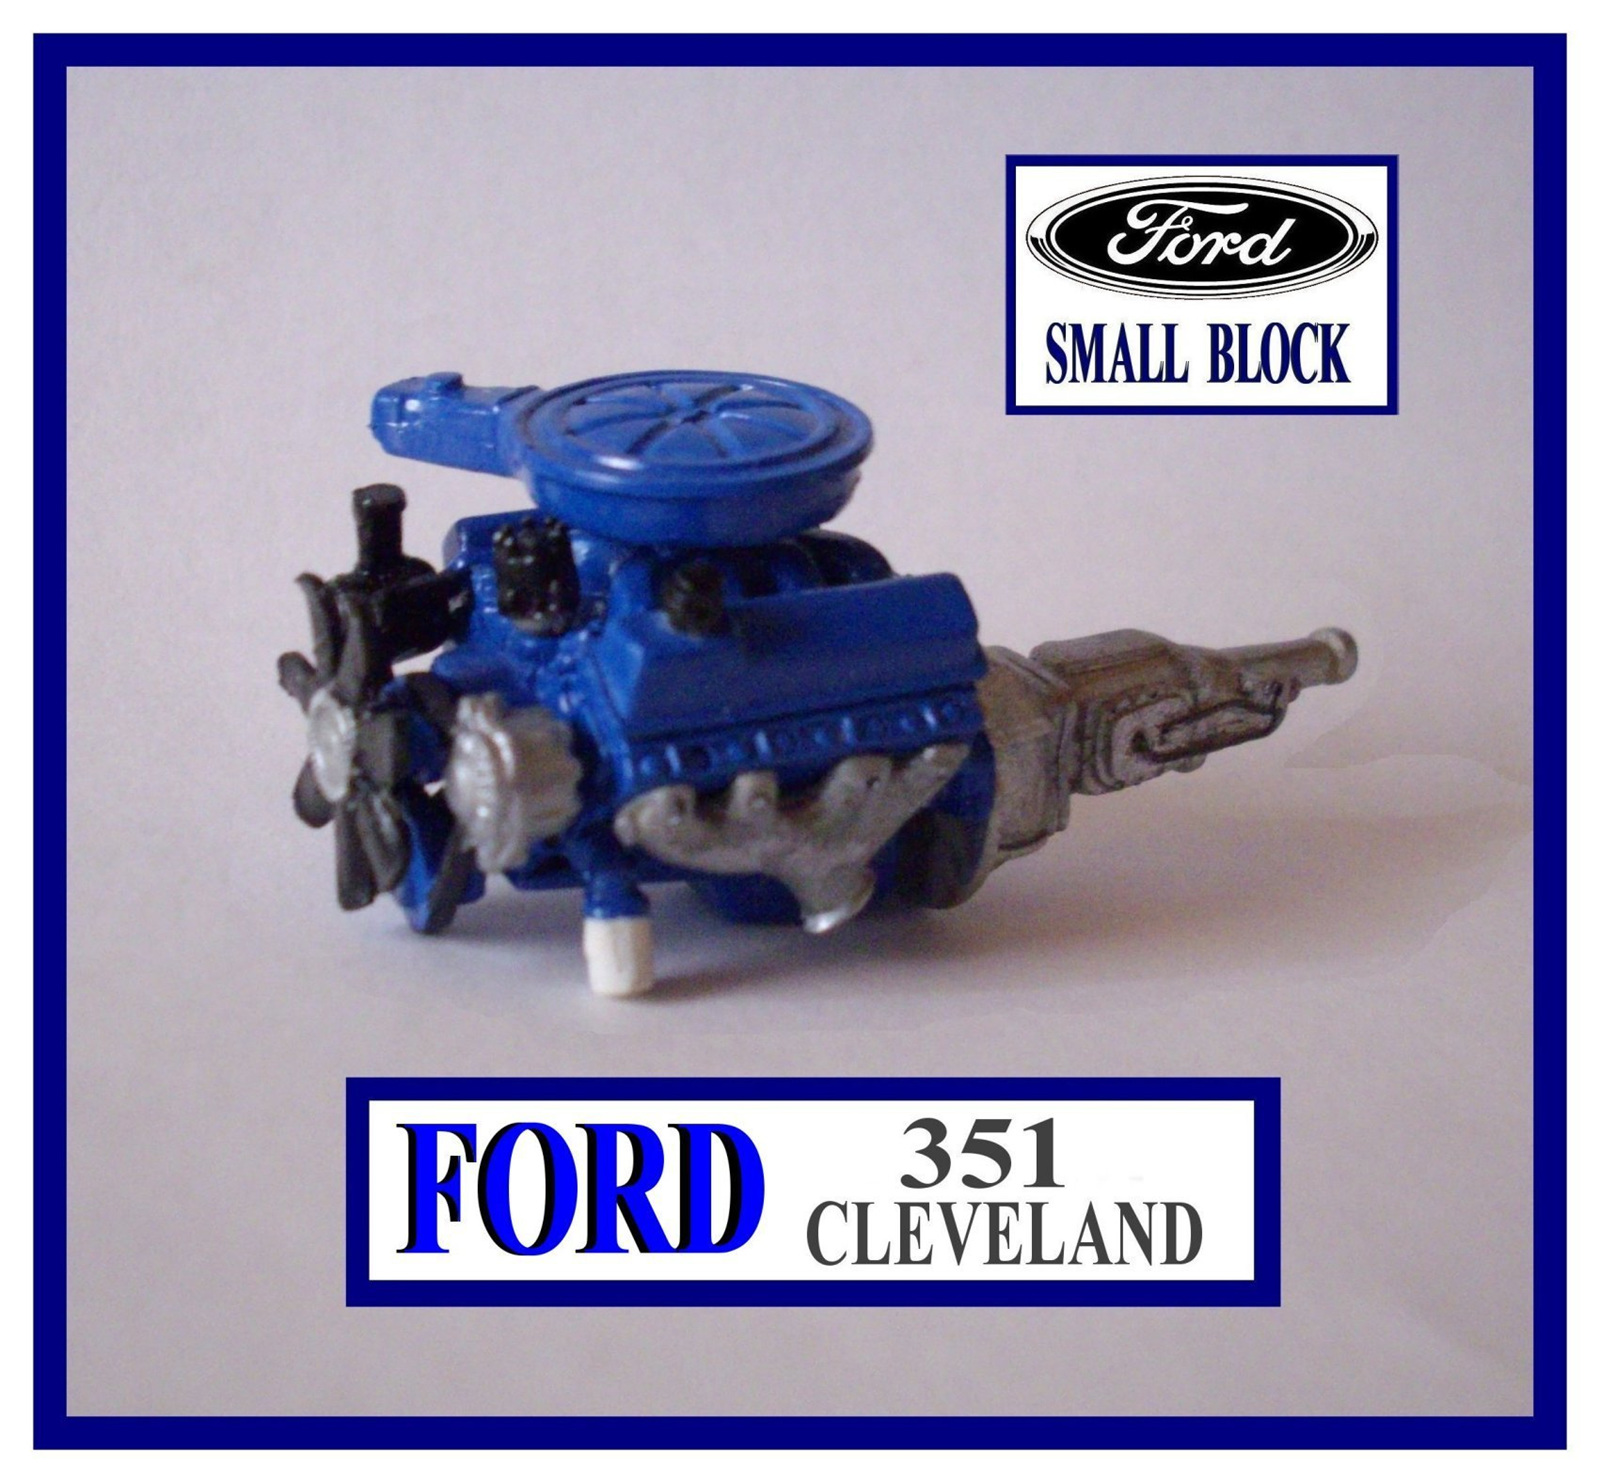 Resin ford 351 cleveland engine kit 1 24 1 25 scale